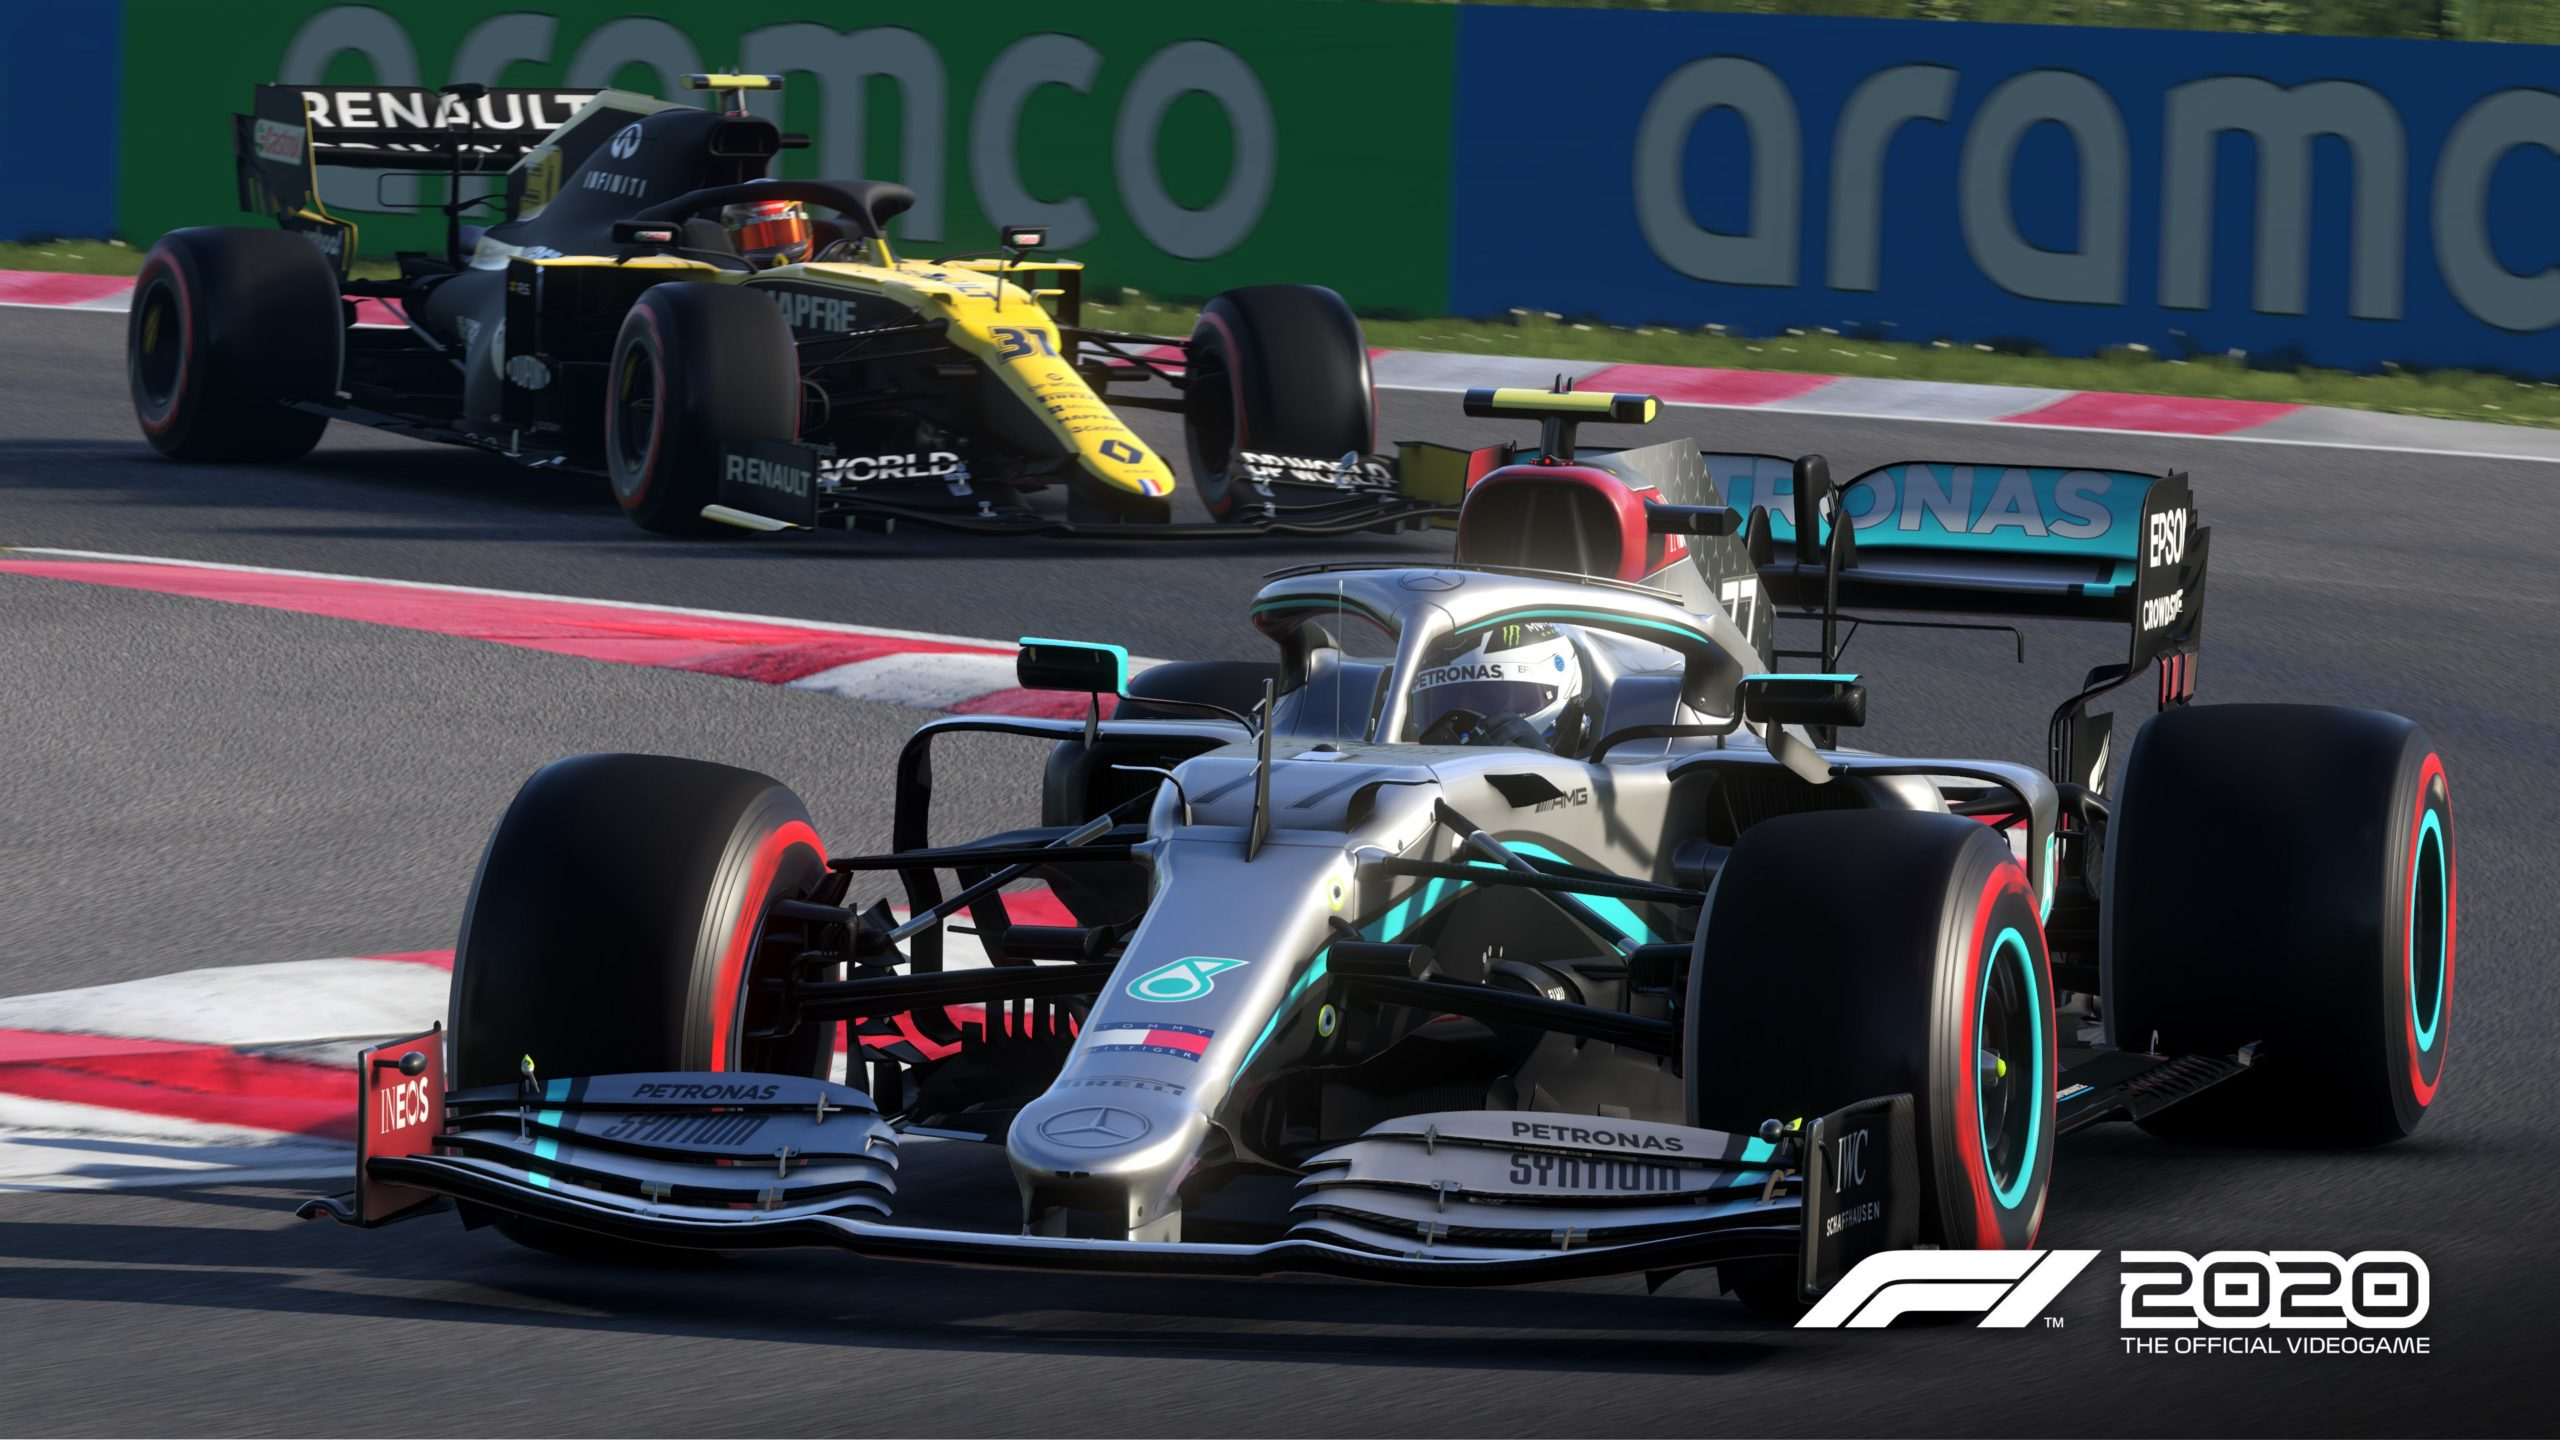 F1_2020_Hungary_Screen_11_4K-scaled F1 2020 – Plenty of New Previews